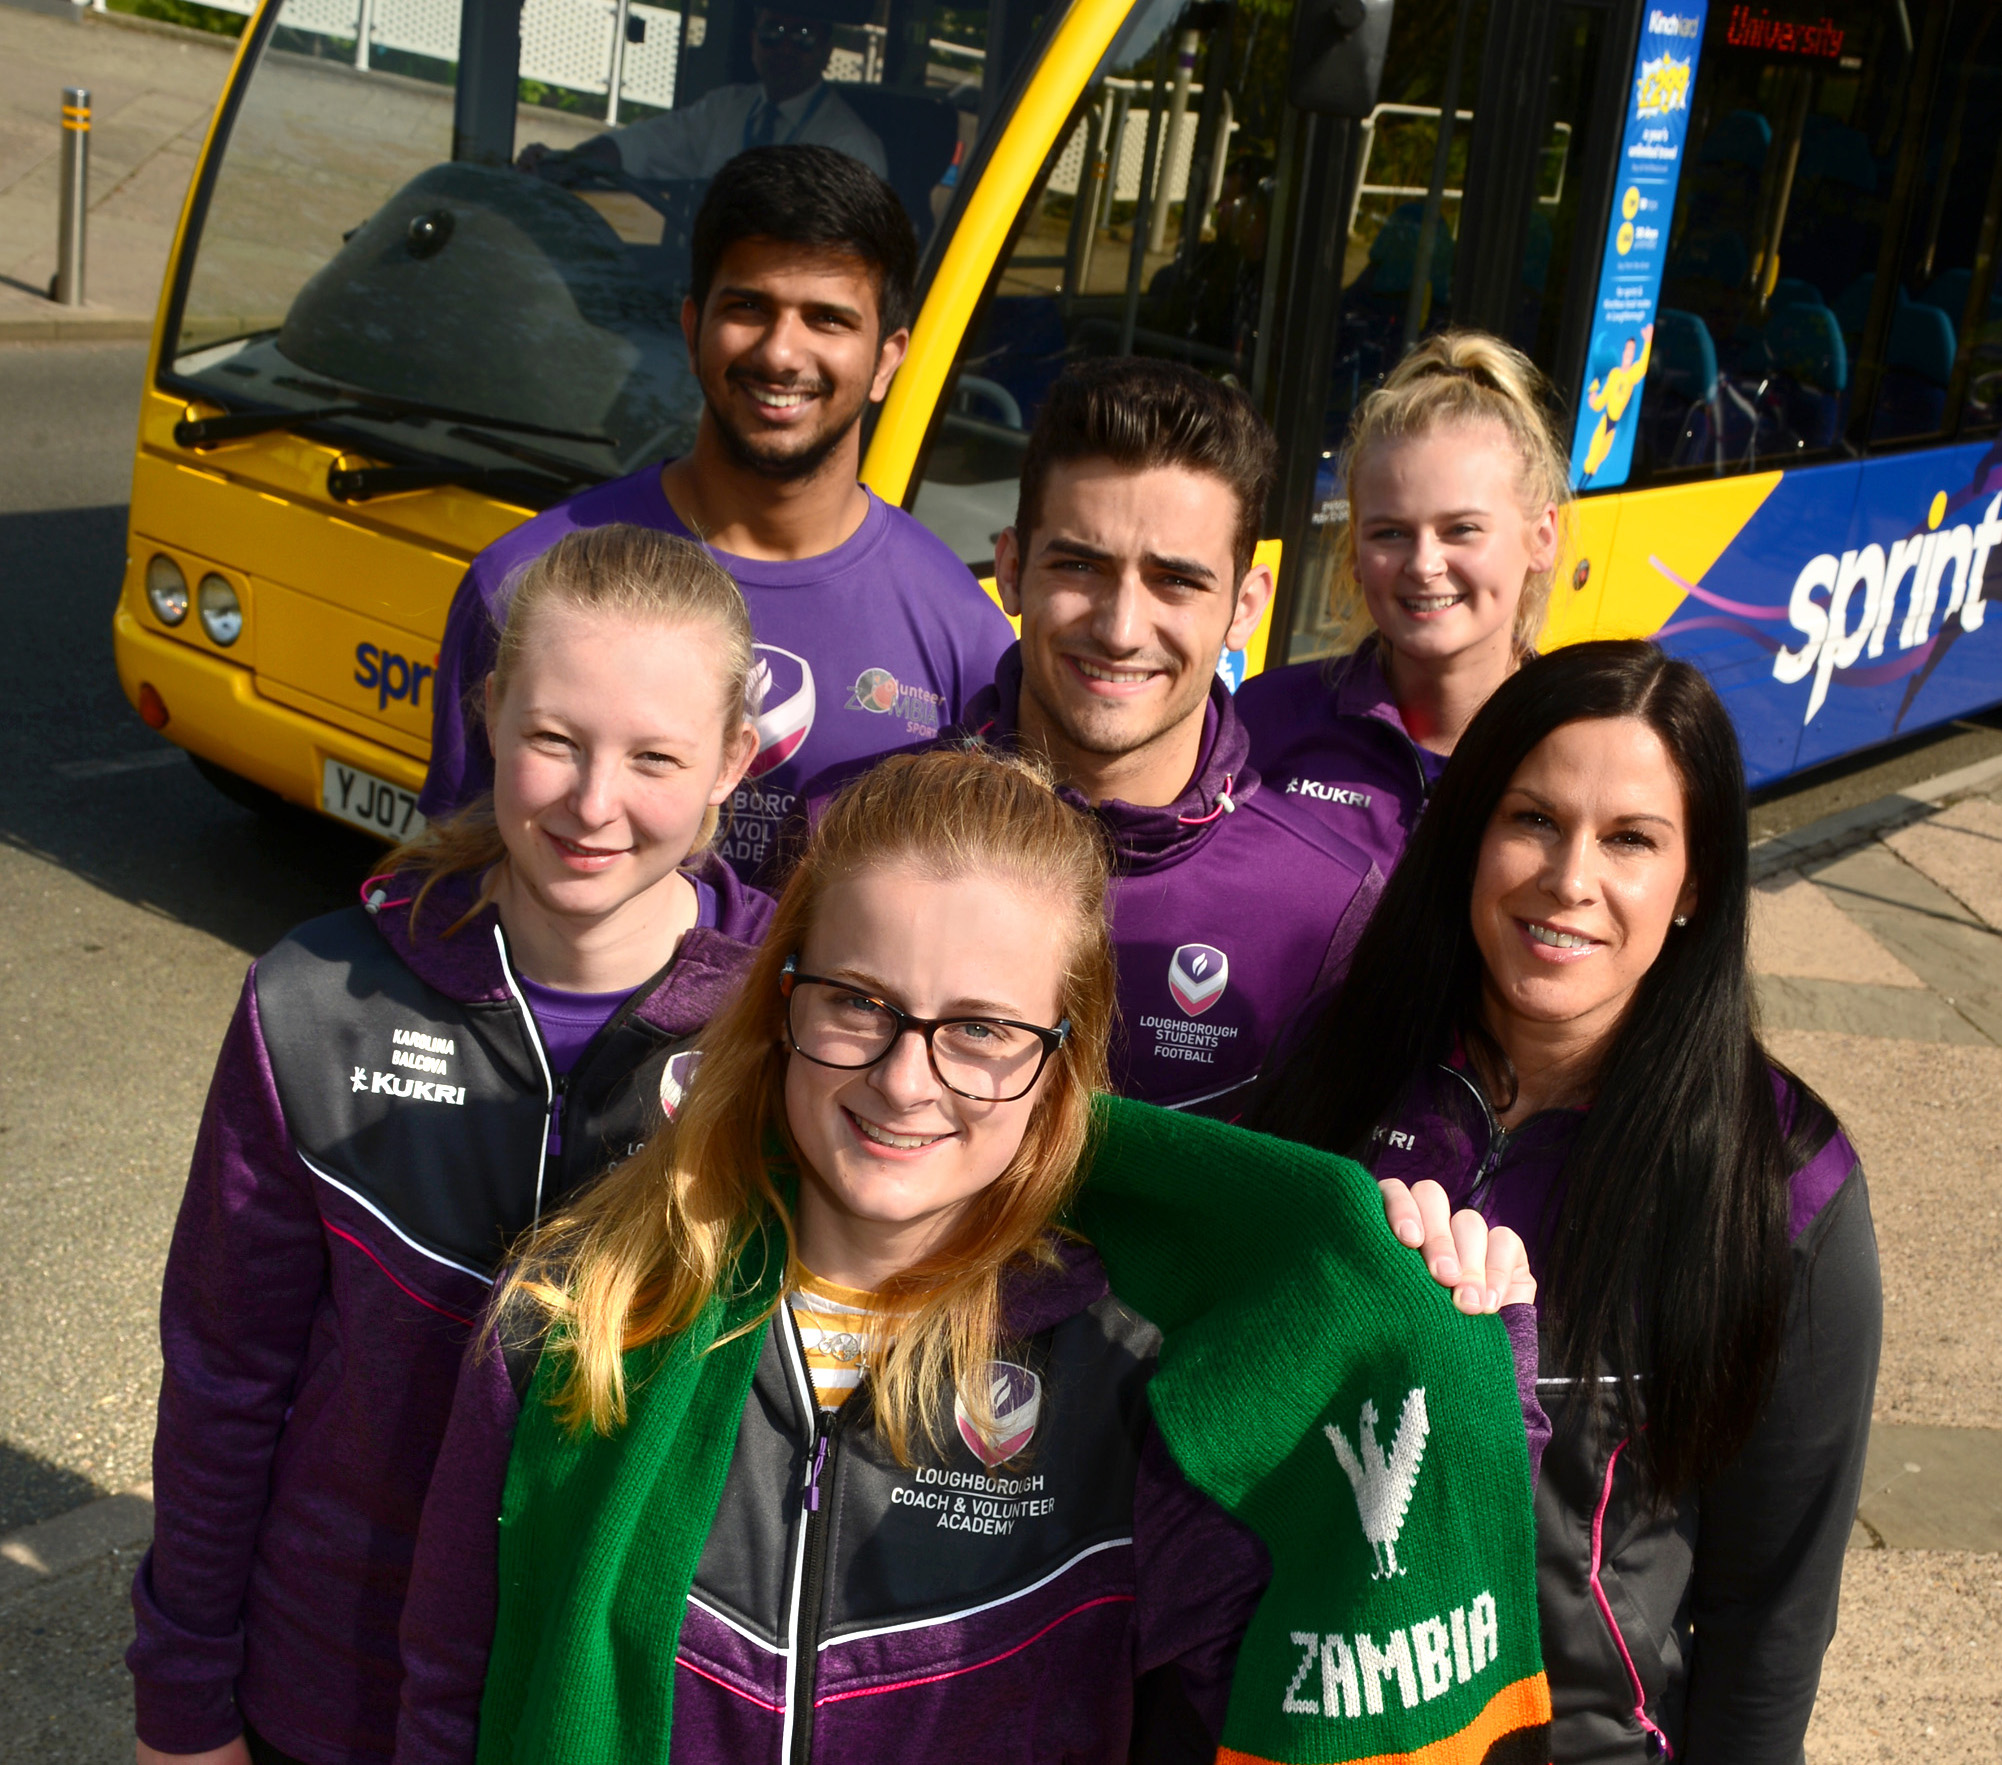 Kinchbus sprints to support Zambia students